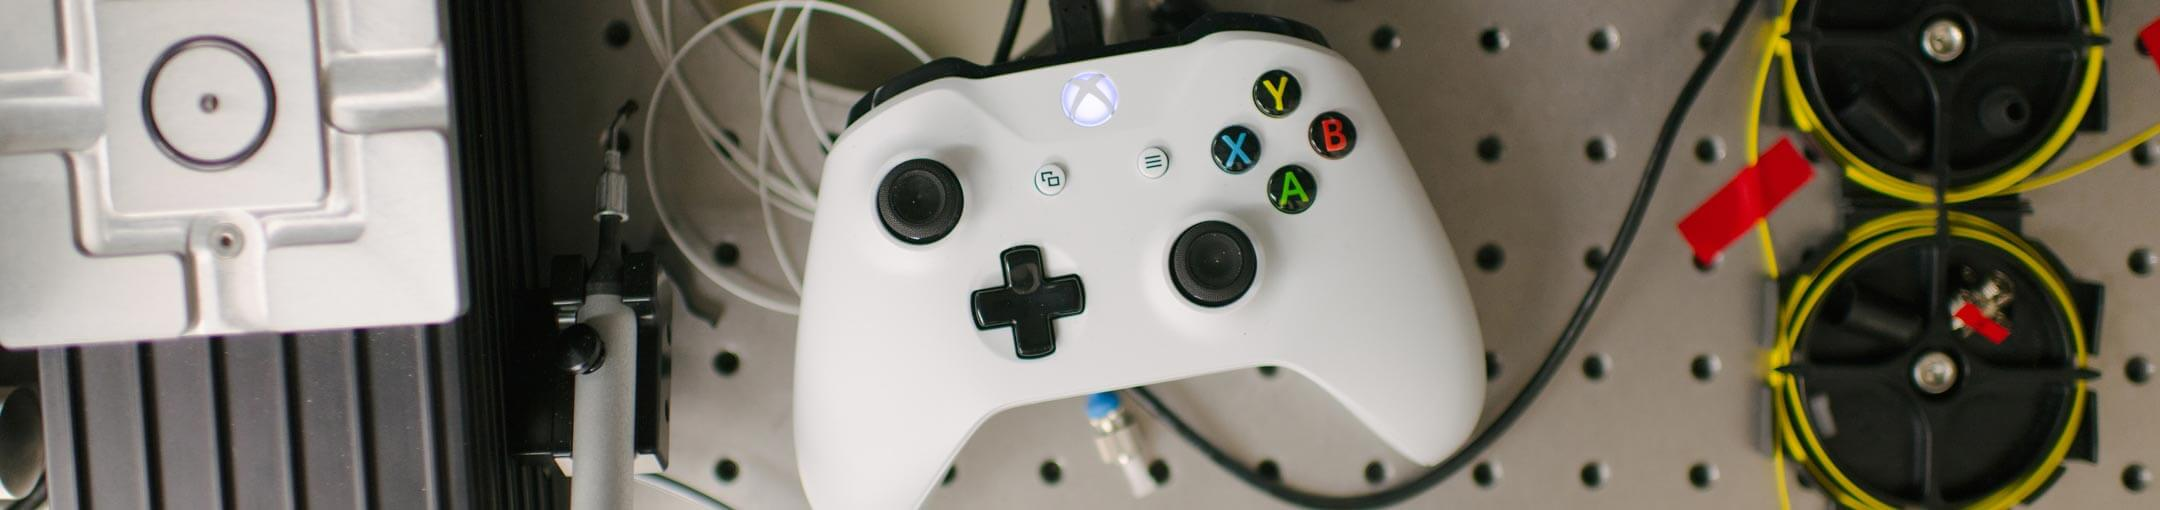 Close up of white game controller.